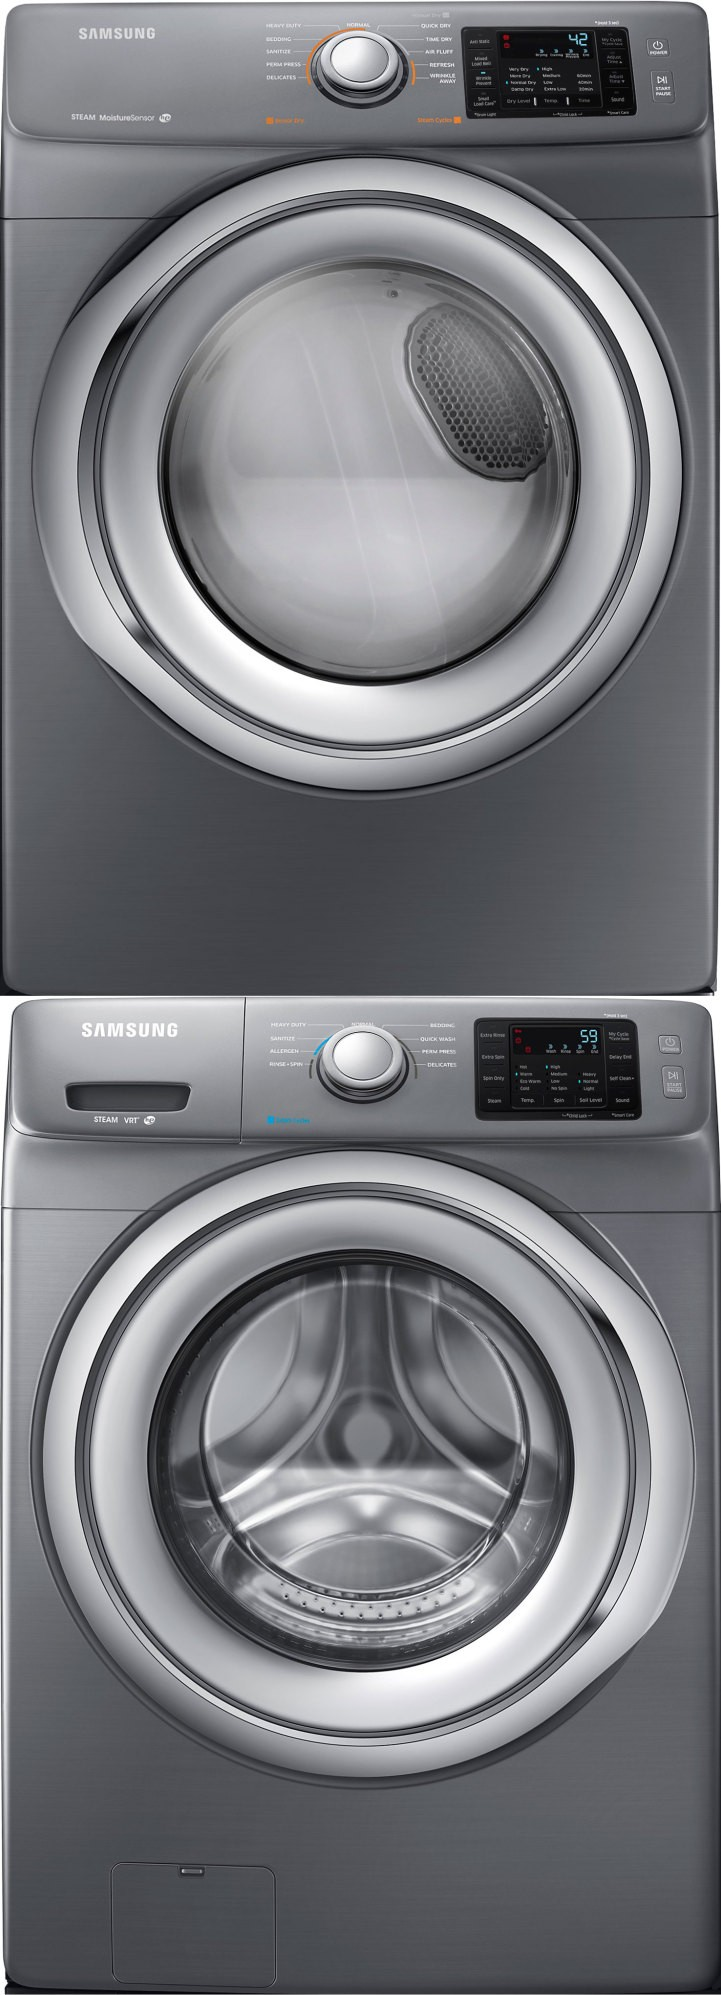 Samsung WF42H5200AP Front Load Washer DV42H5200EP Electric Dryer w